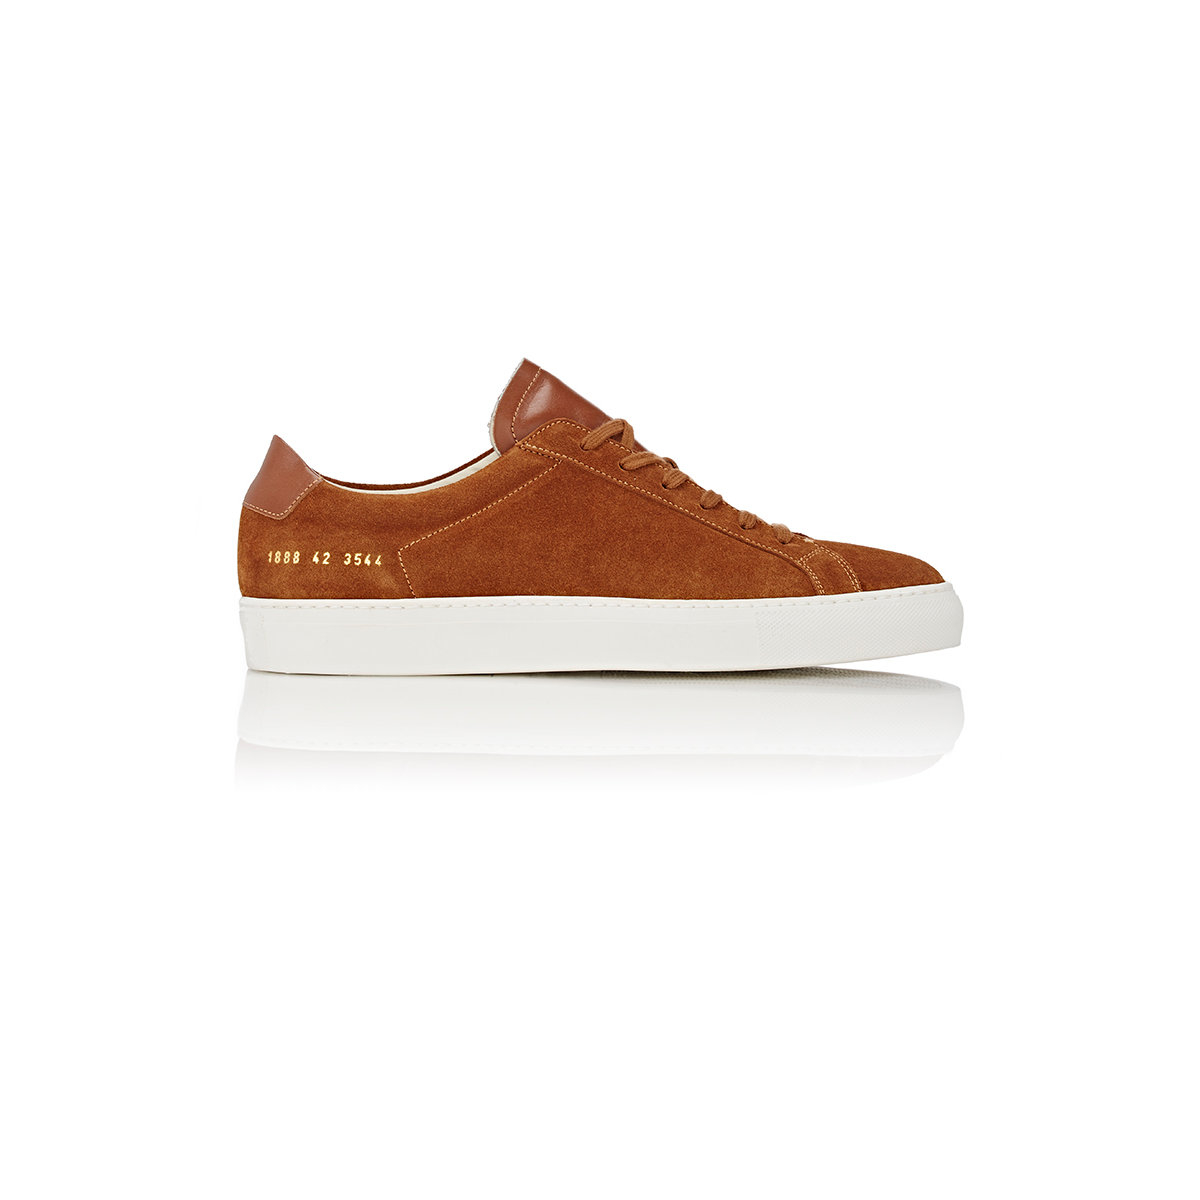 common projects achilles premium leather and suede low top sneakers in brown for men lyst. Black Bedroom Furniture Sets. Home Design Ideas